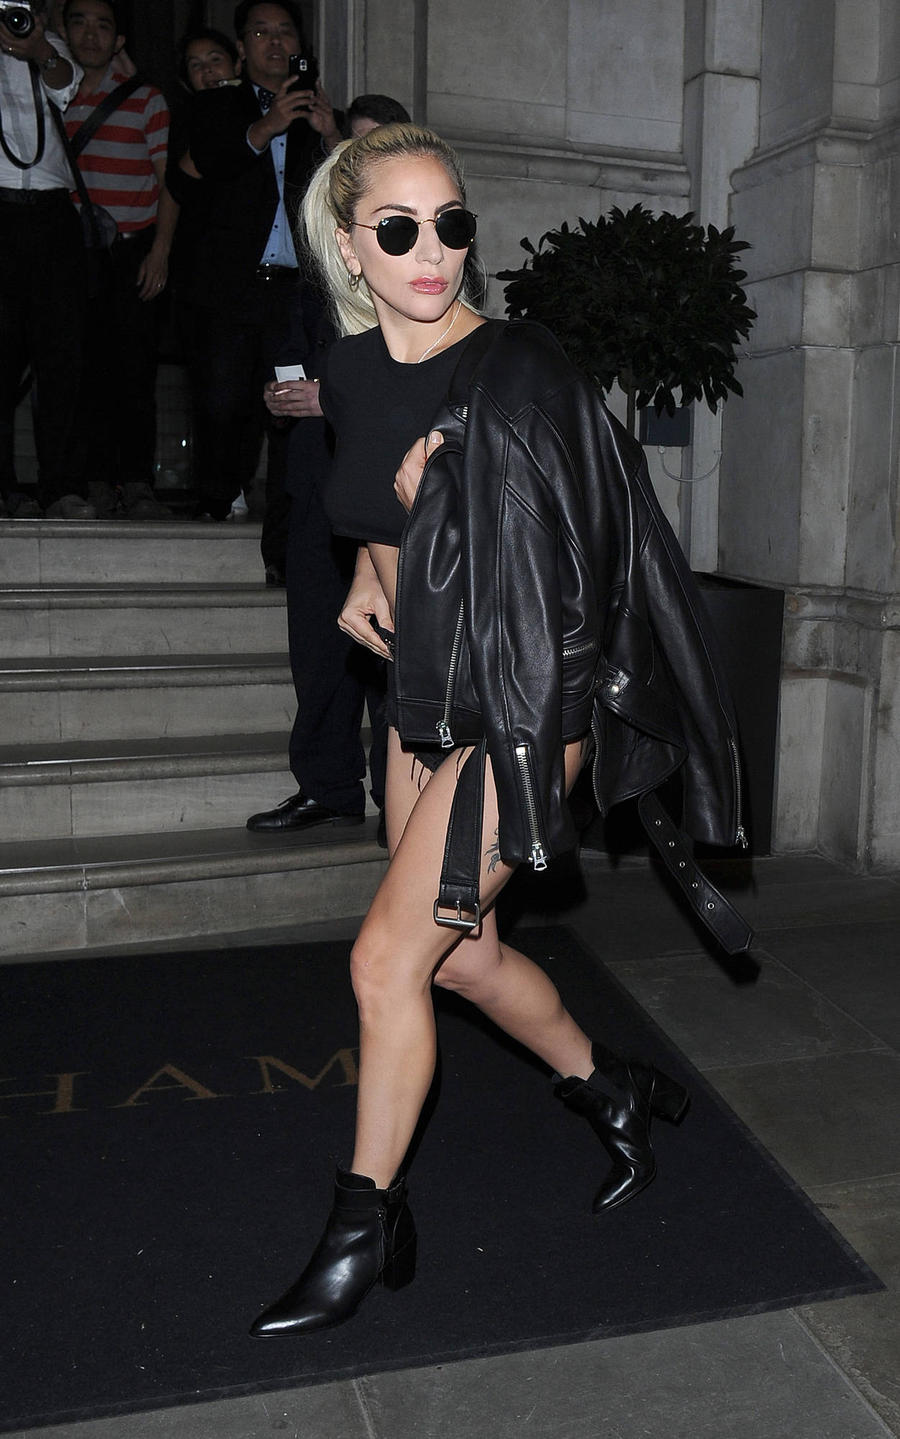 Lady Gaga 'Needed A Moment To Stabilise' After Huge Success